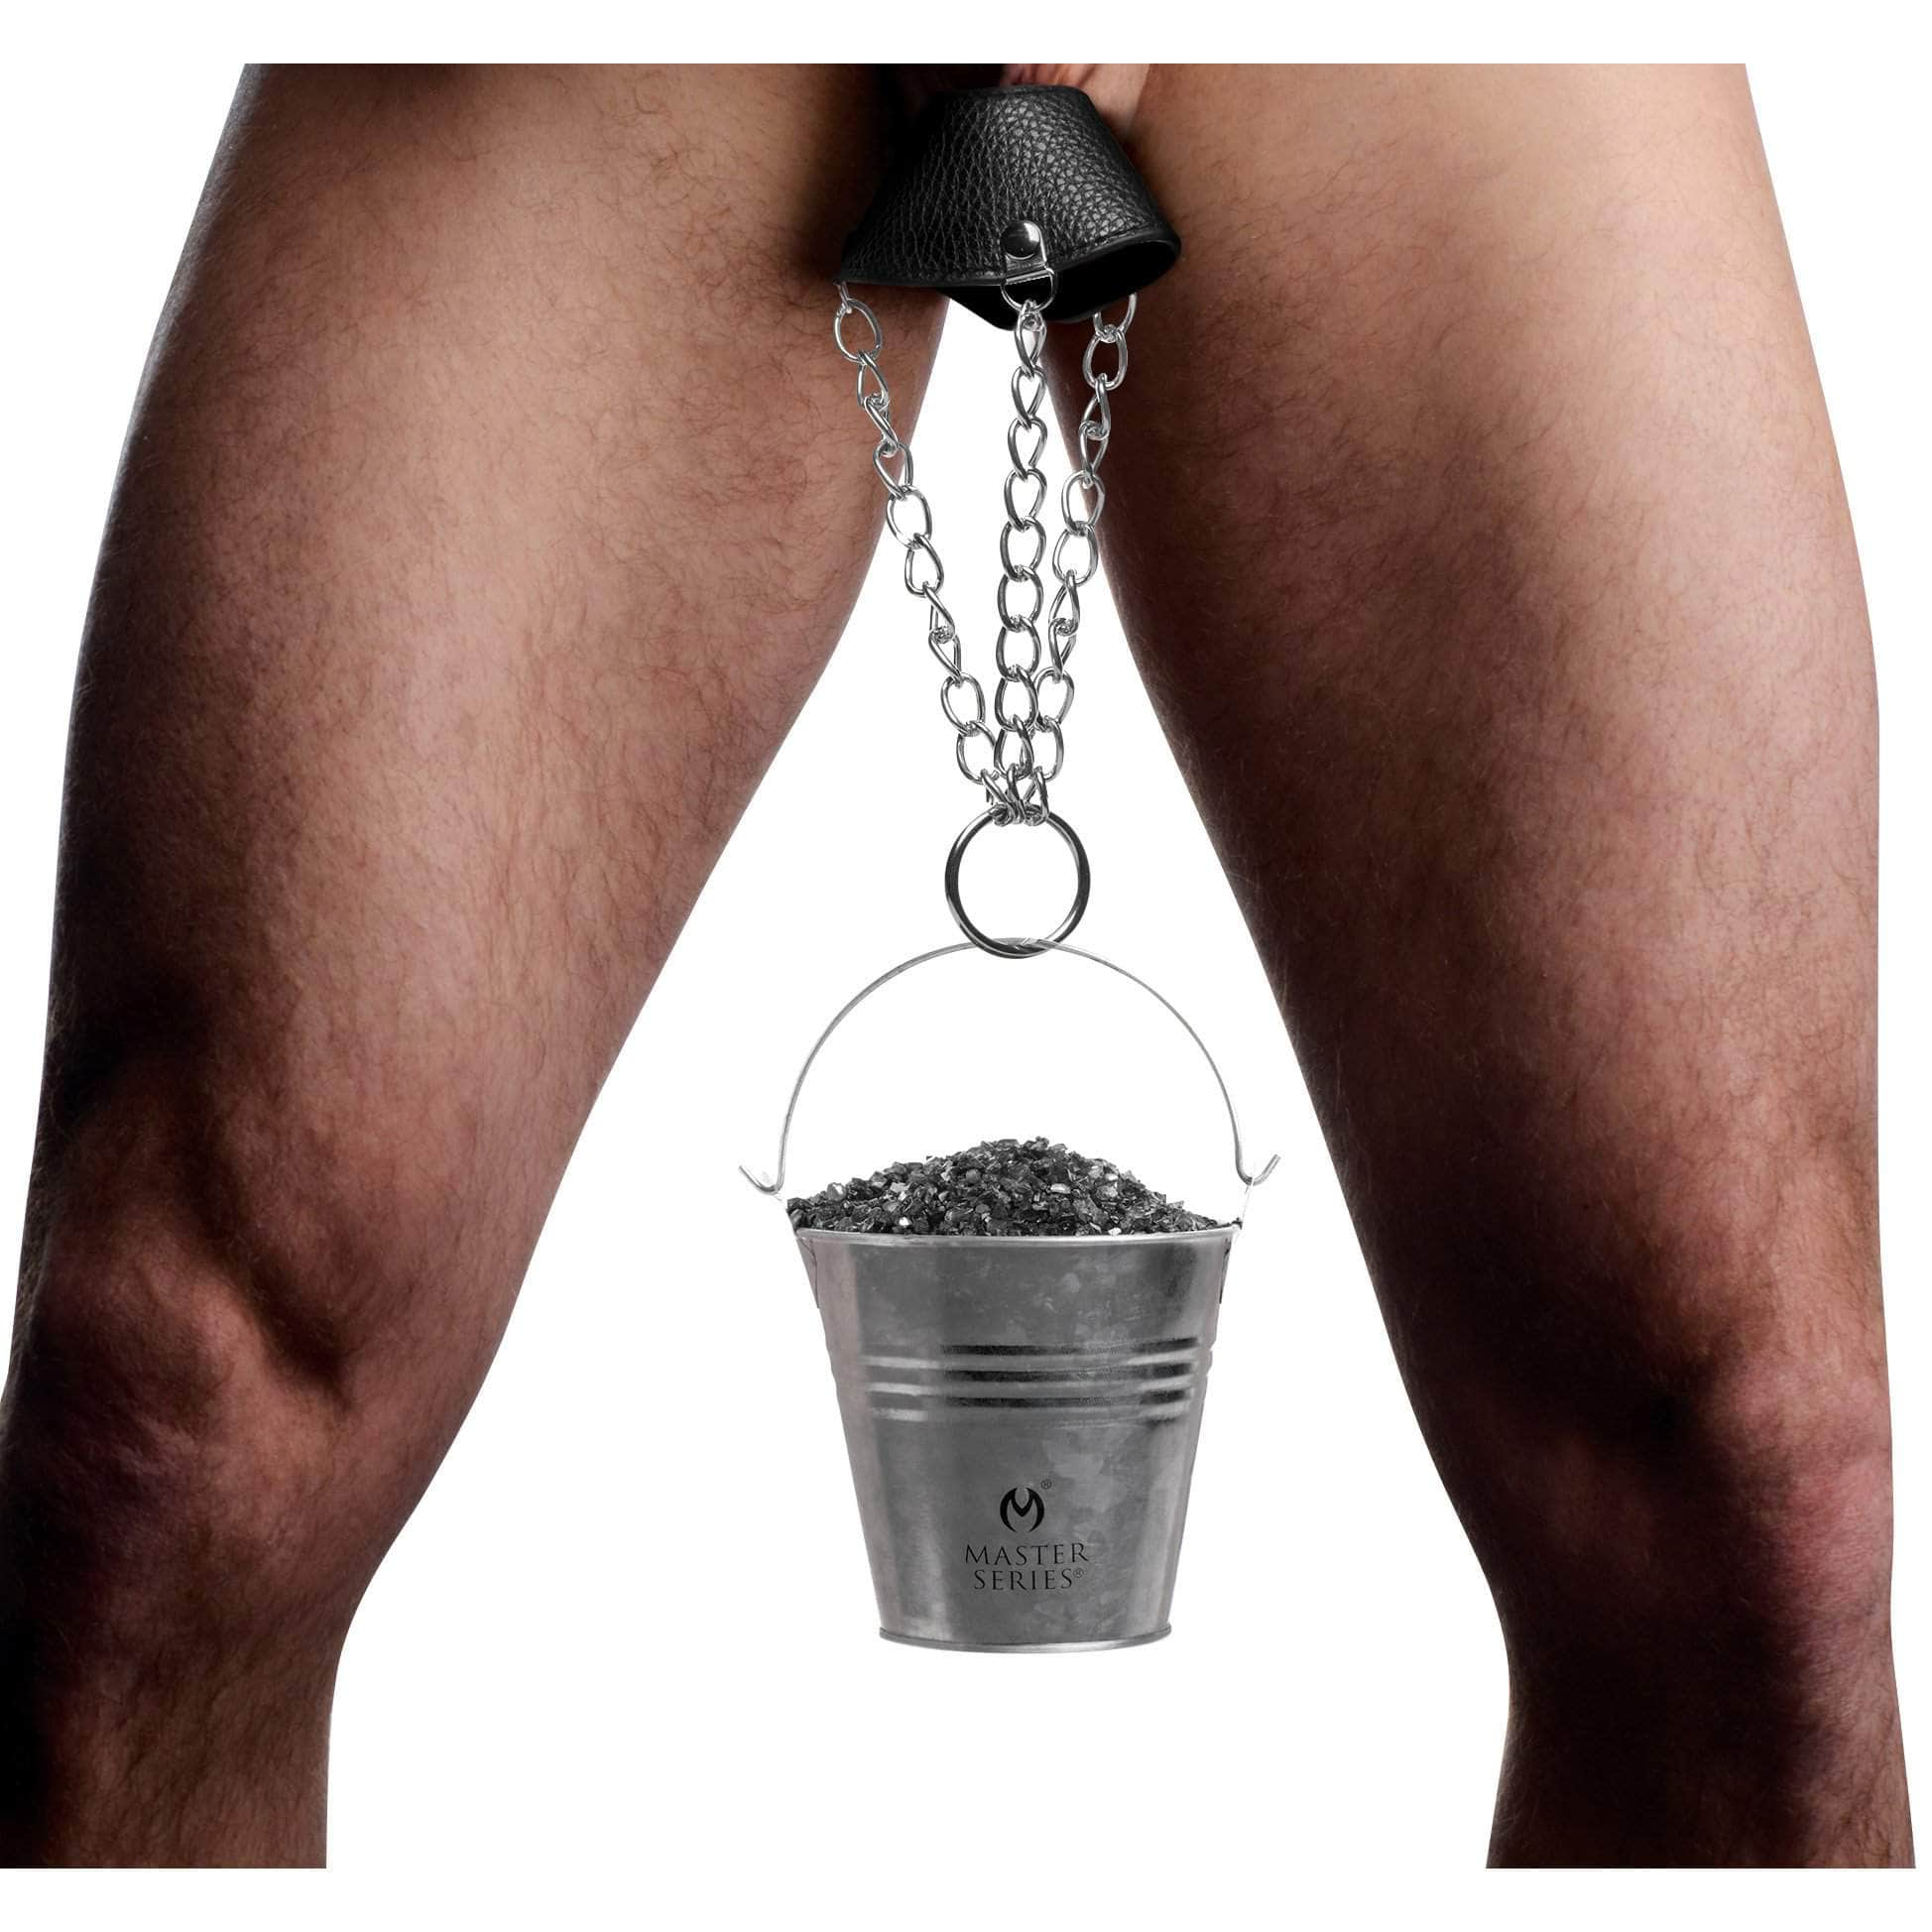 Hells Bucket Ball Stretcher